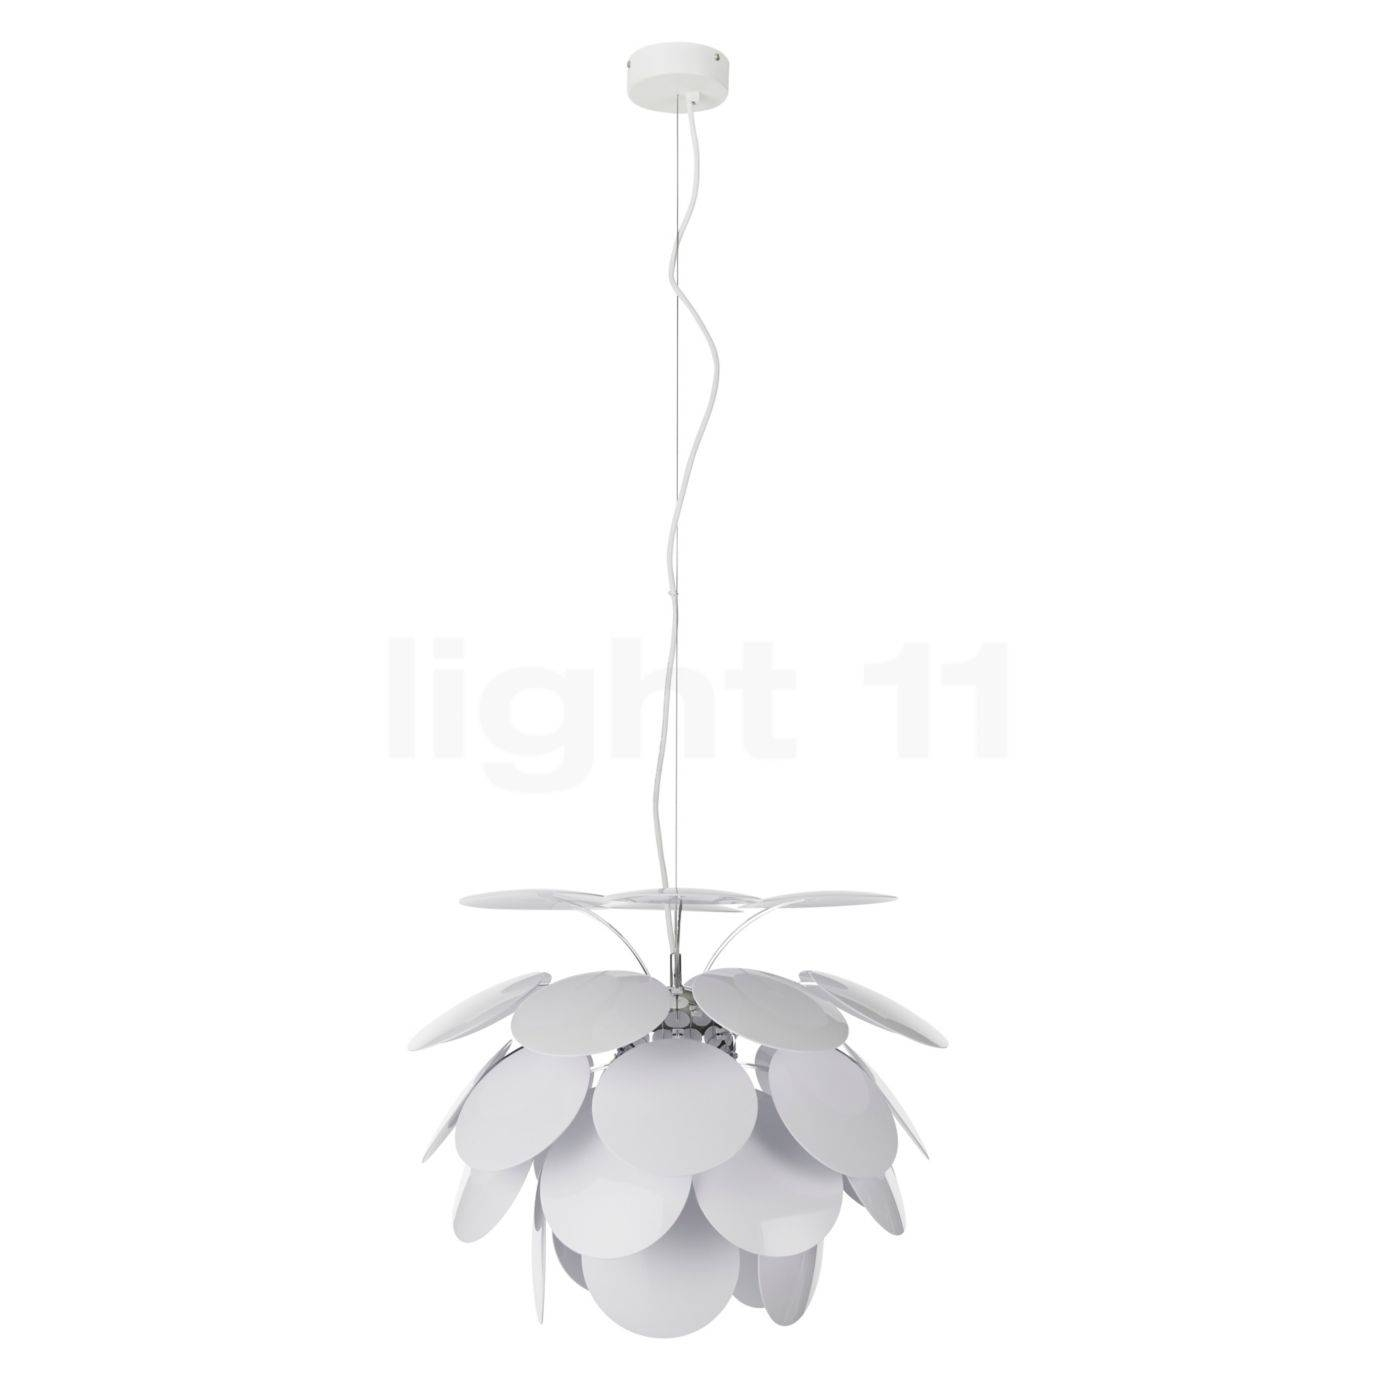 Marset Discocó 35 Pendant Light Pendant Lights - Light11.eu regarding Discoco Pendant Lights (Image 12 of 15)